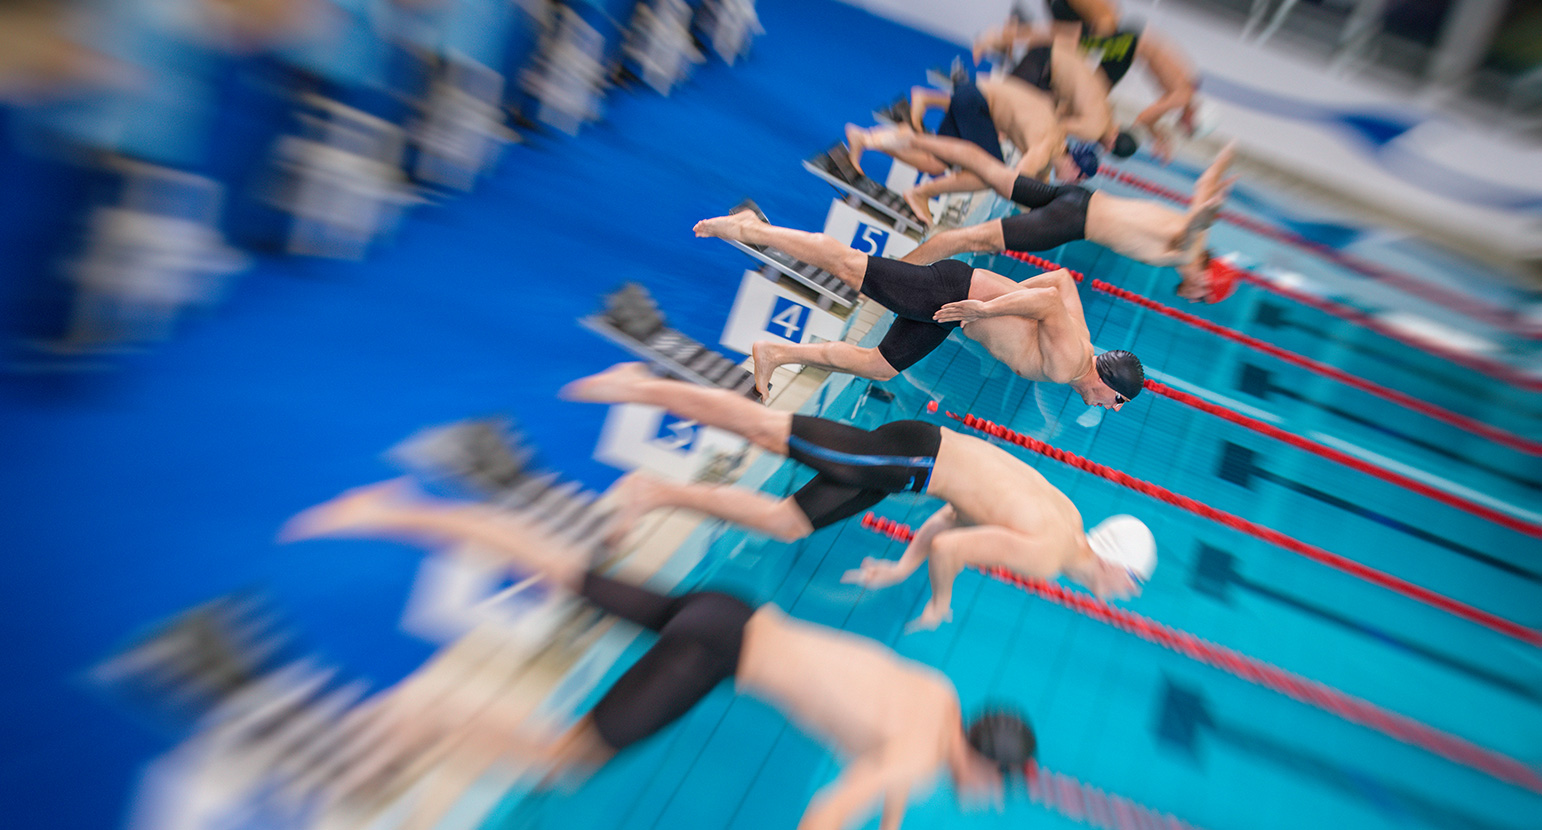 Swimmers jumping off starting block